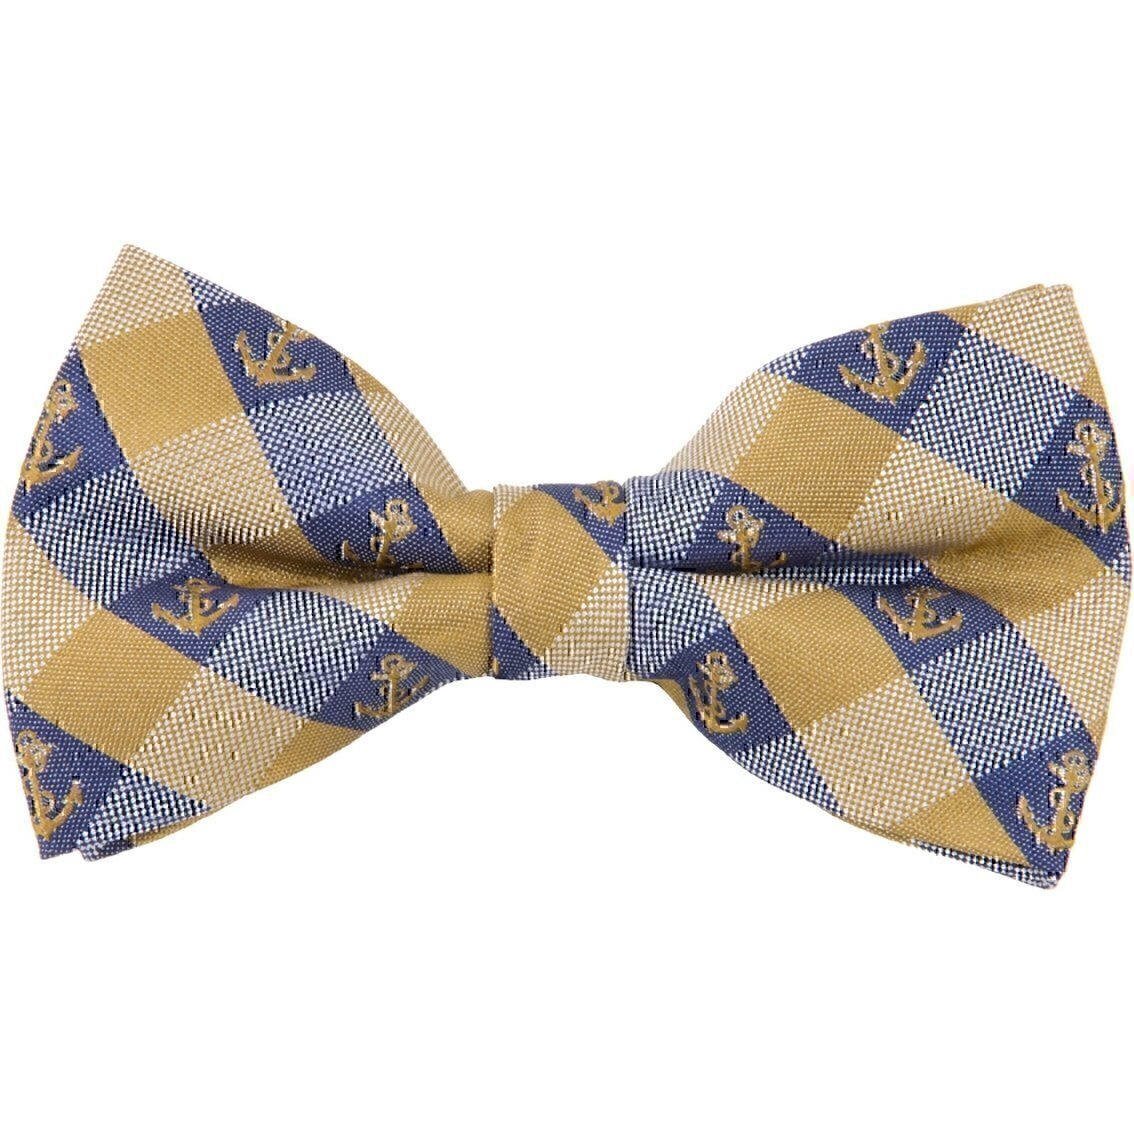 We love this Navy inspired bow tie! Show your support for your spouse's branch while also adding a little bit of personality.